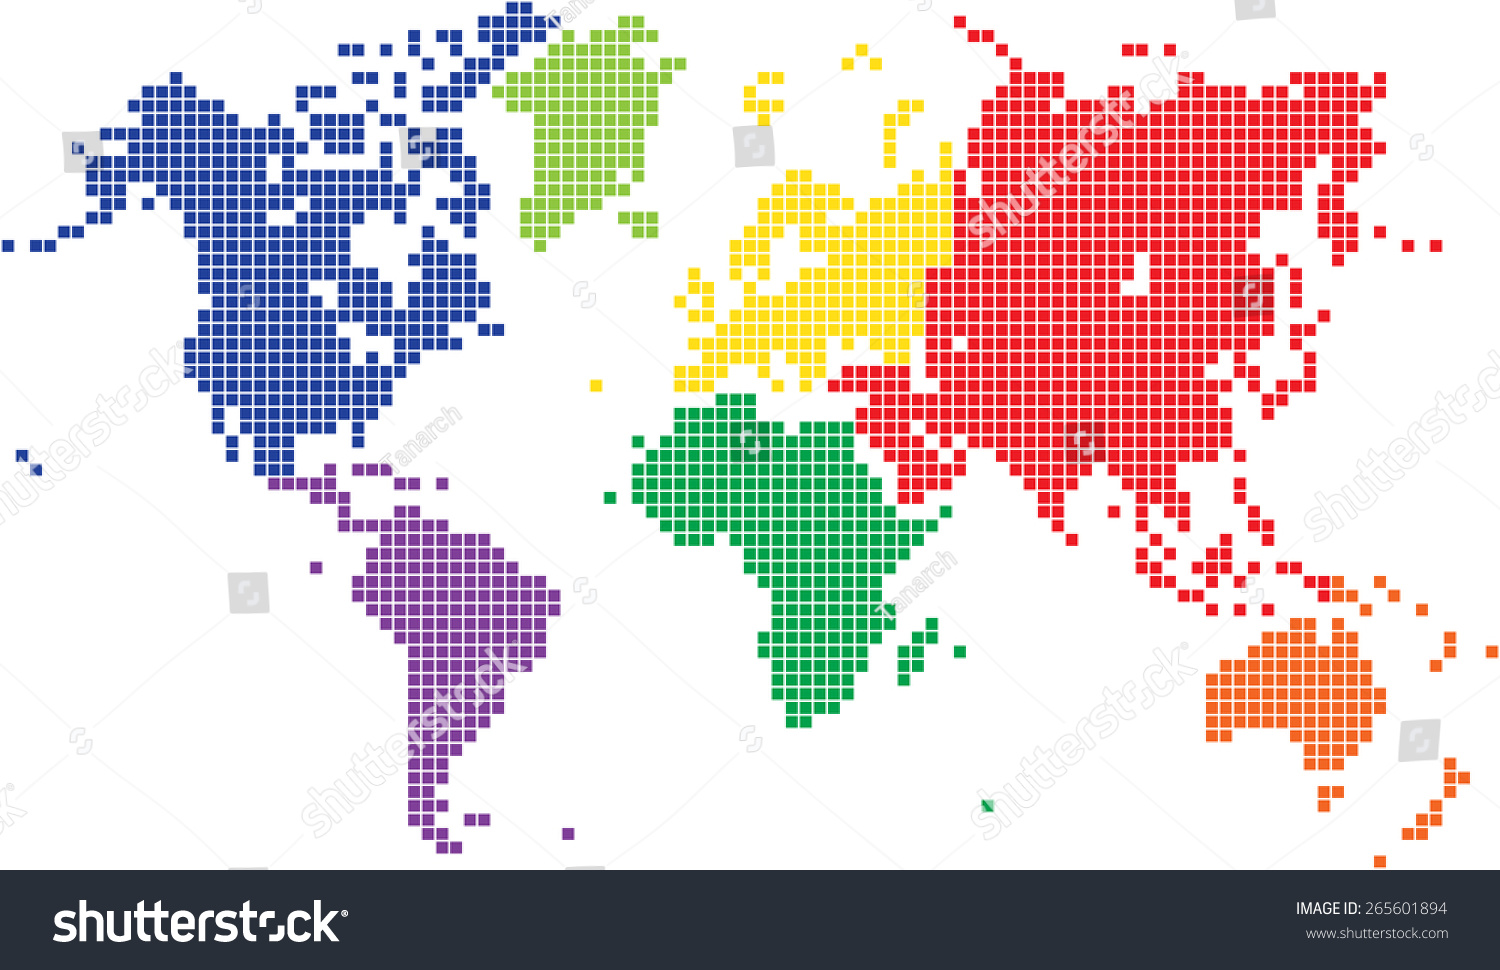 Round edge multicolored square world map stock vector 2018 round edge multicolored square world map on white background vector illustration gumiabroncs Image collections